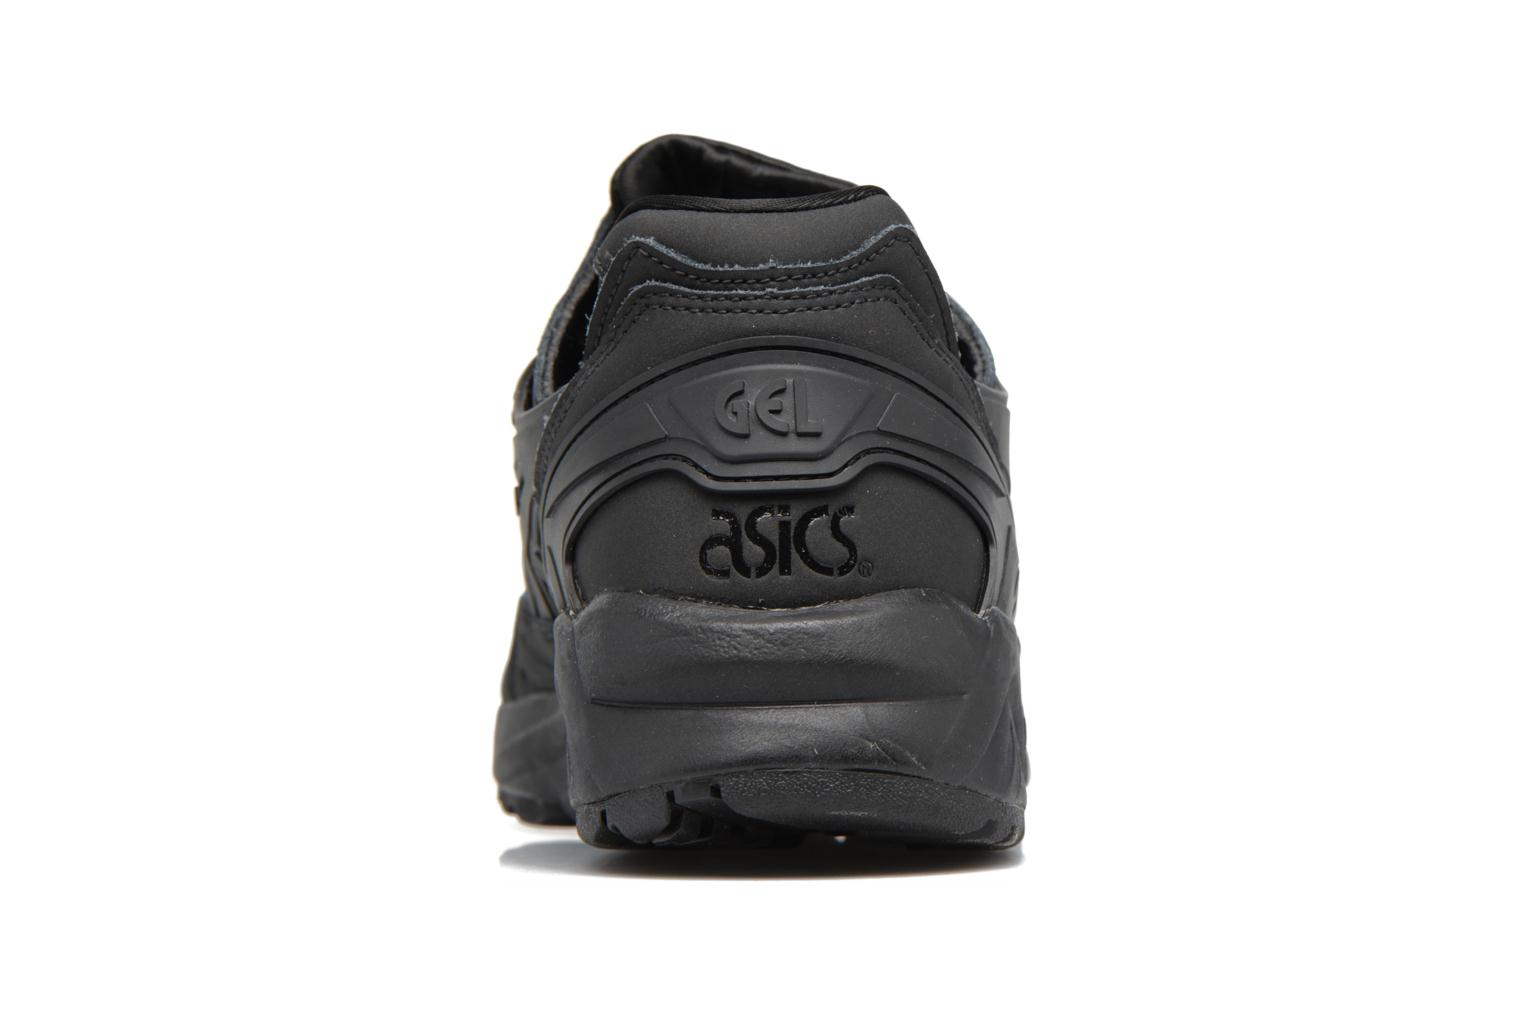 Gel-Kayano Trainer Black/black 2